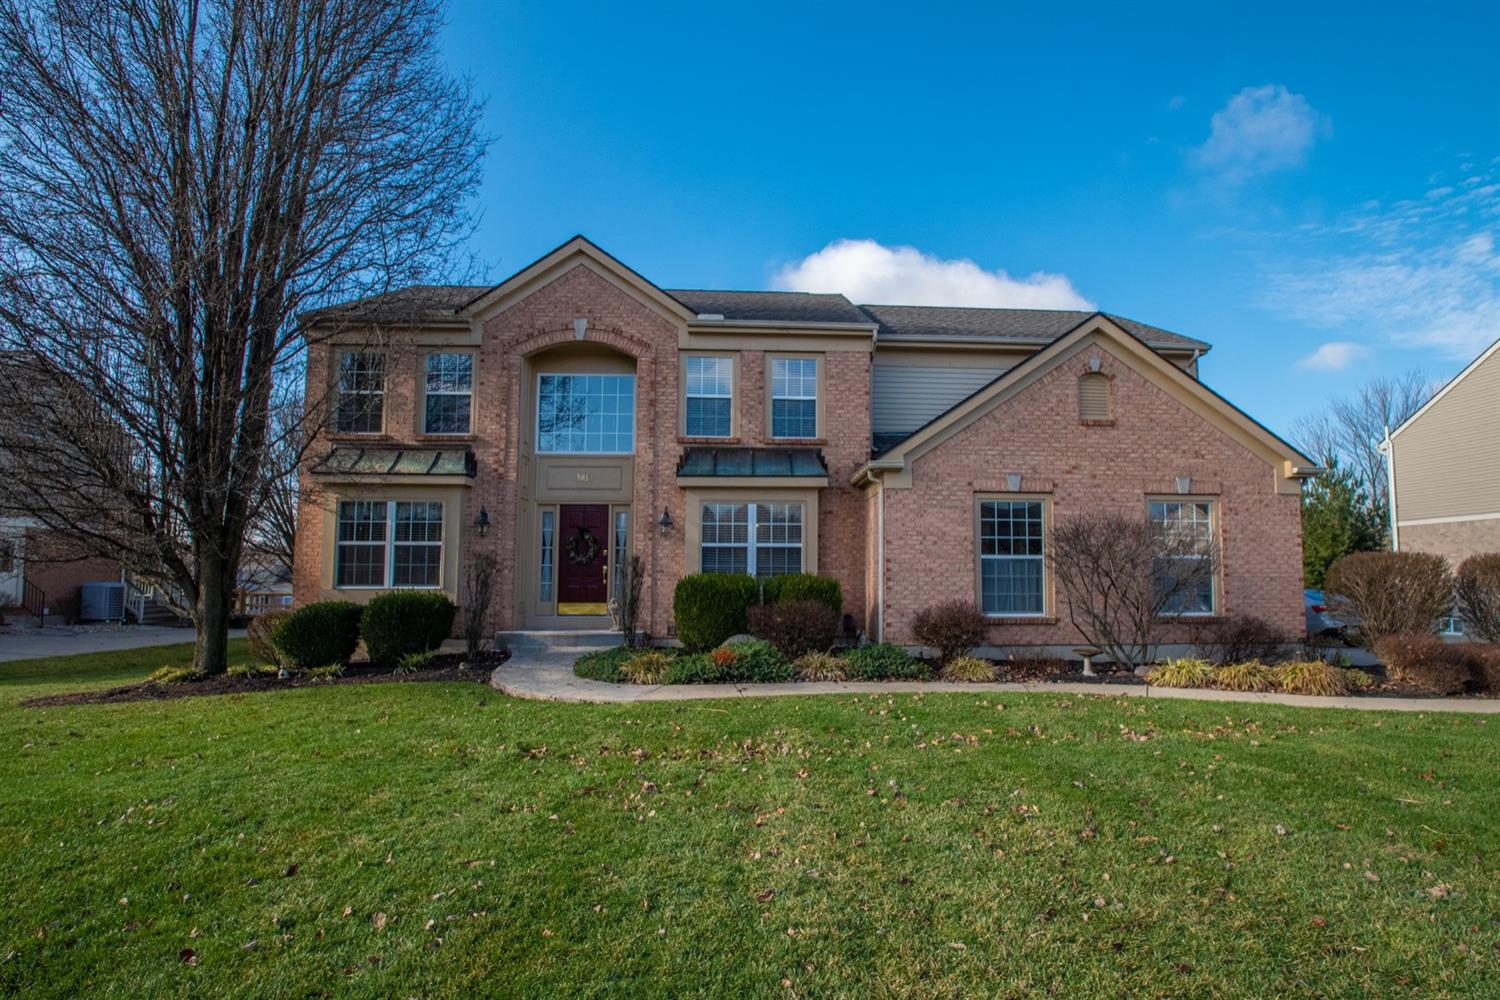 Property for sale at 5013 Hurlingham Way, Union Twp,  Ohio 45244